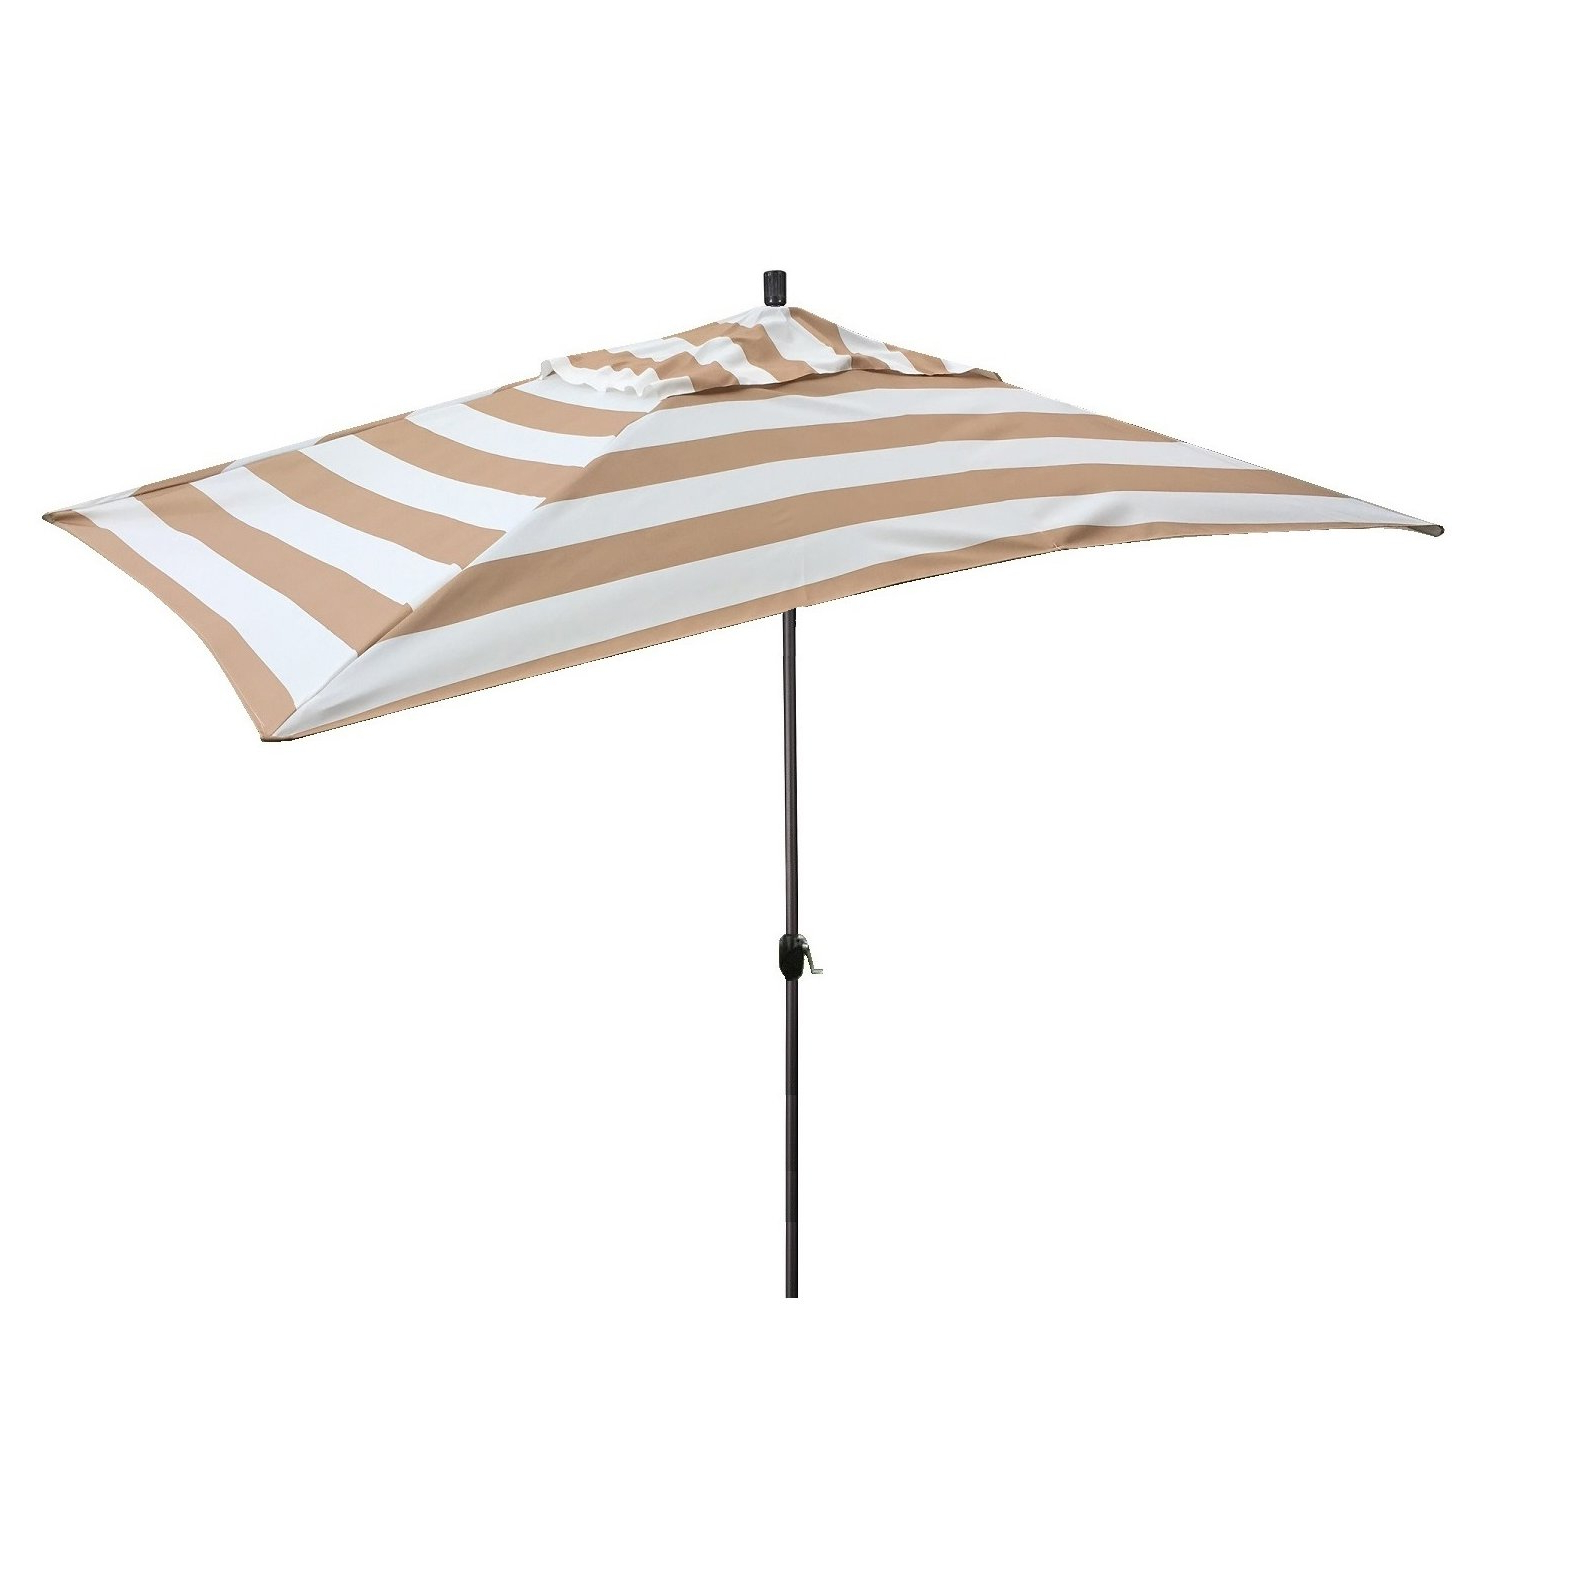 Haverhill Umbrellas Intended For Well Known Jalynn 10' X 6' Rectangular Market Umbrella (View 5 of 20)